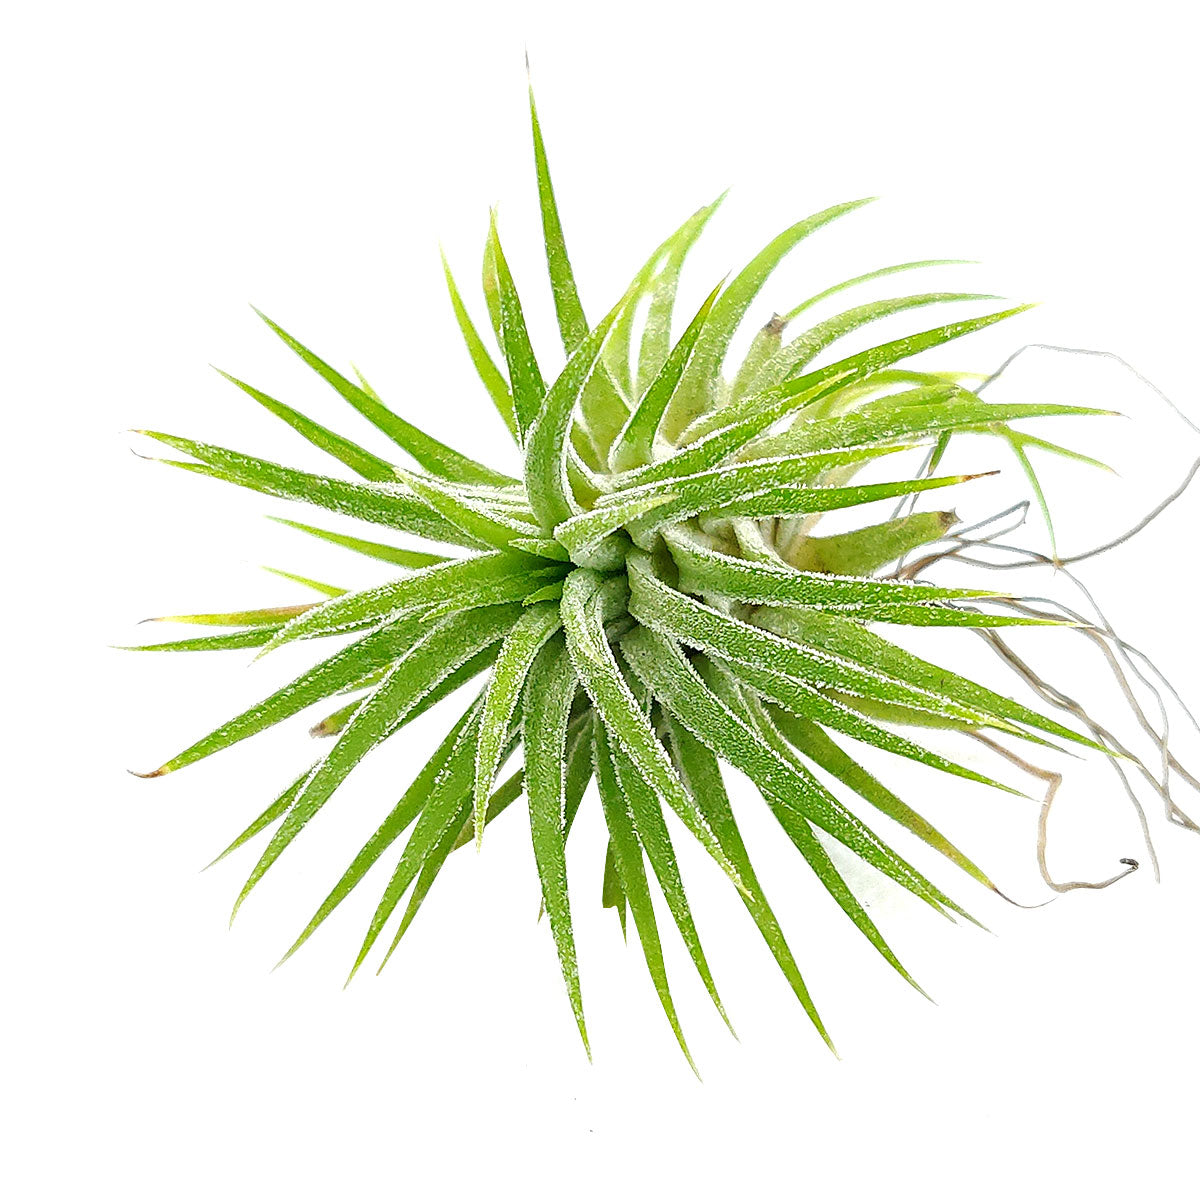 Tillandsia Ionantha Huamelula air plant for sale, unique gift decor ideas, air plant subscription delivery monthly, Tillandsia Ionantha Huamelula with air plant care guide